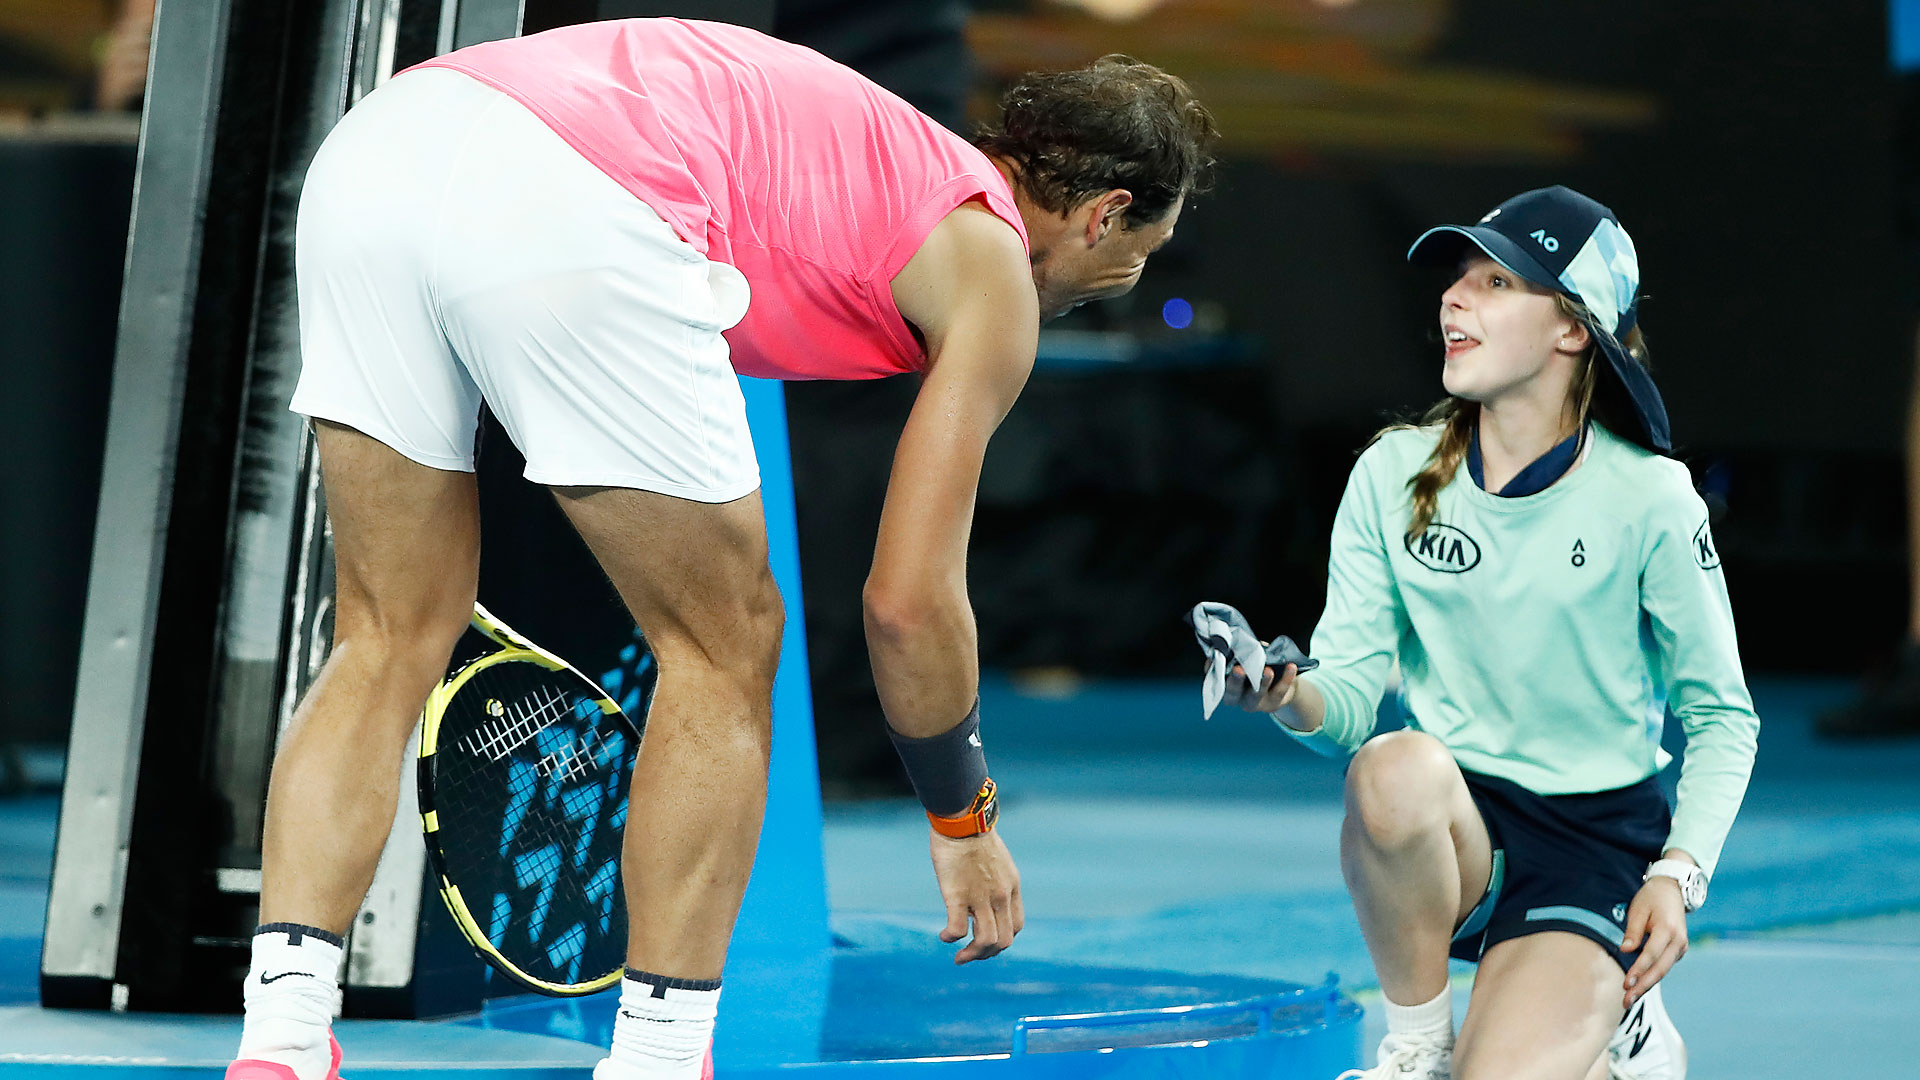 Sealed With A Kiss Nadal S Scary Moment 2020 Australian Open Second Round Atp Tour Tennis